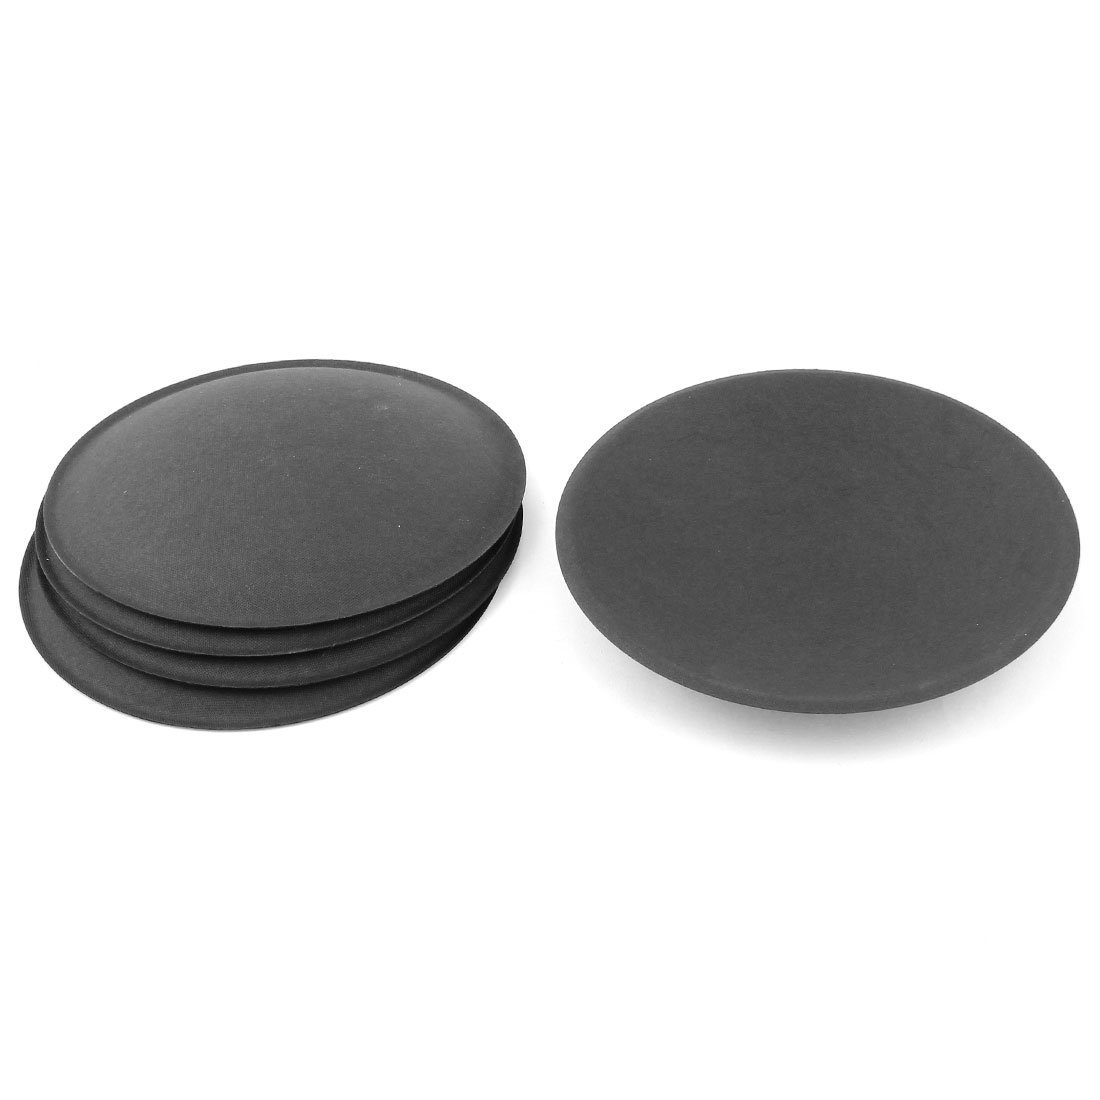 Aexit 5 Pcs 150mm Subwoofer Bass Speaker Dome Dust Cap Cover Paper